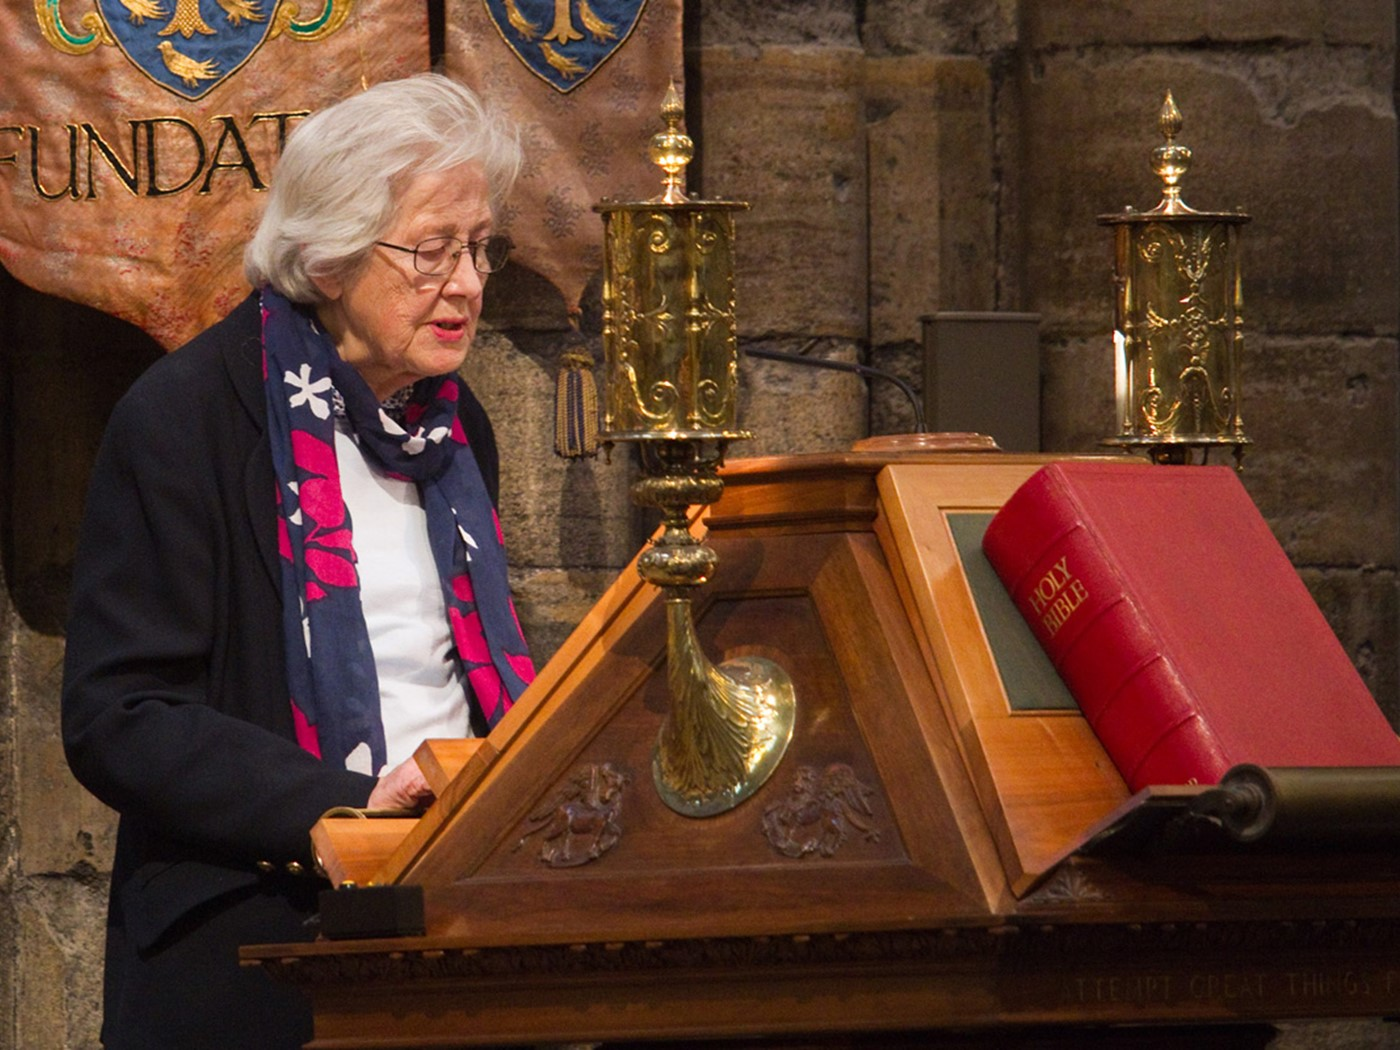 Shelagh Townsend-Rose, Member of Borders Decorative and Fine Arts Society and Volunteer, reads Genesis 1: 24-end